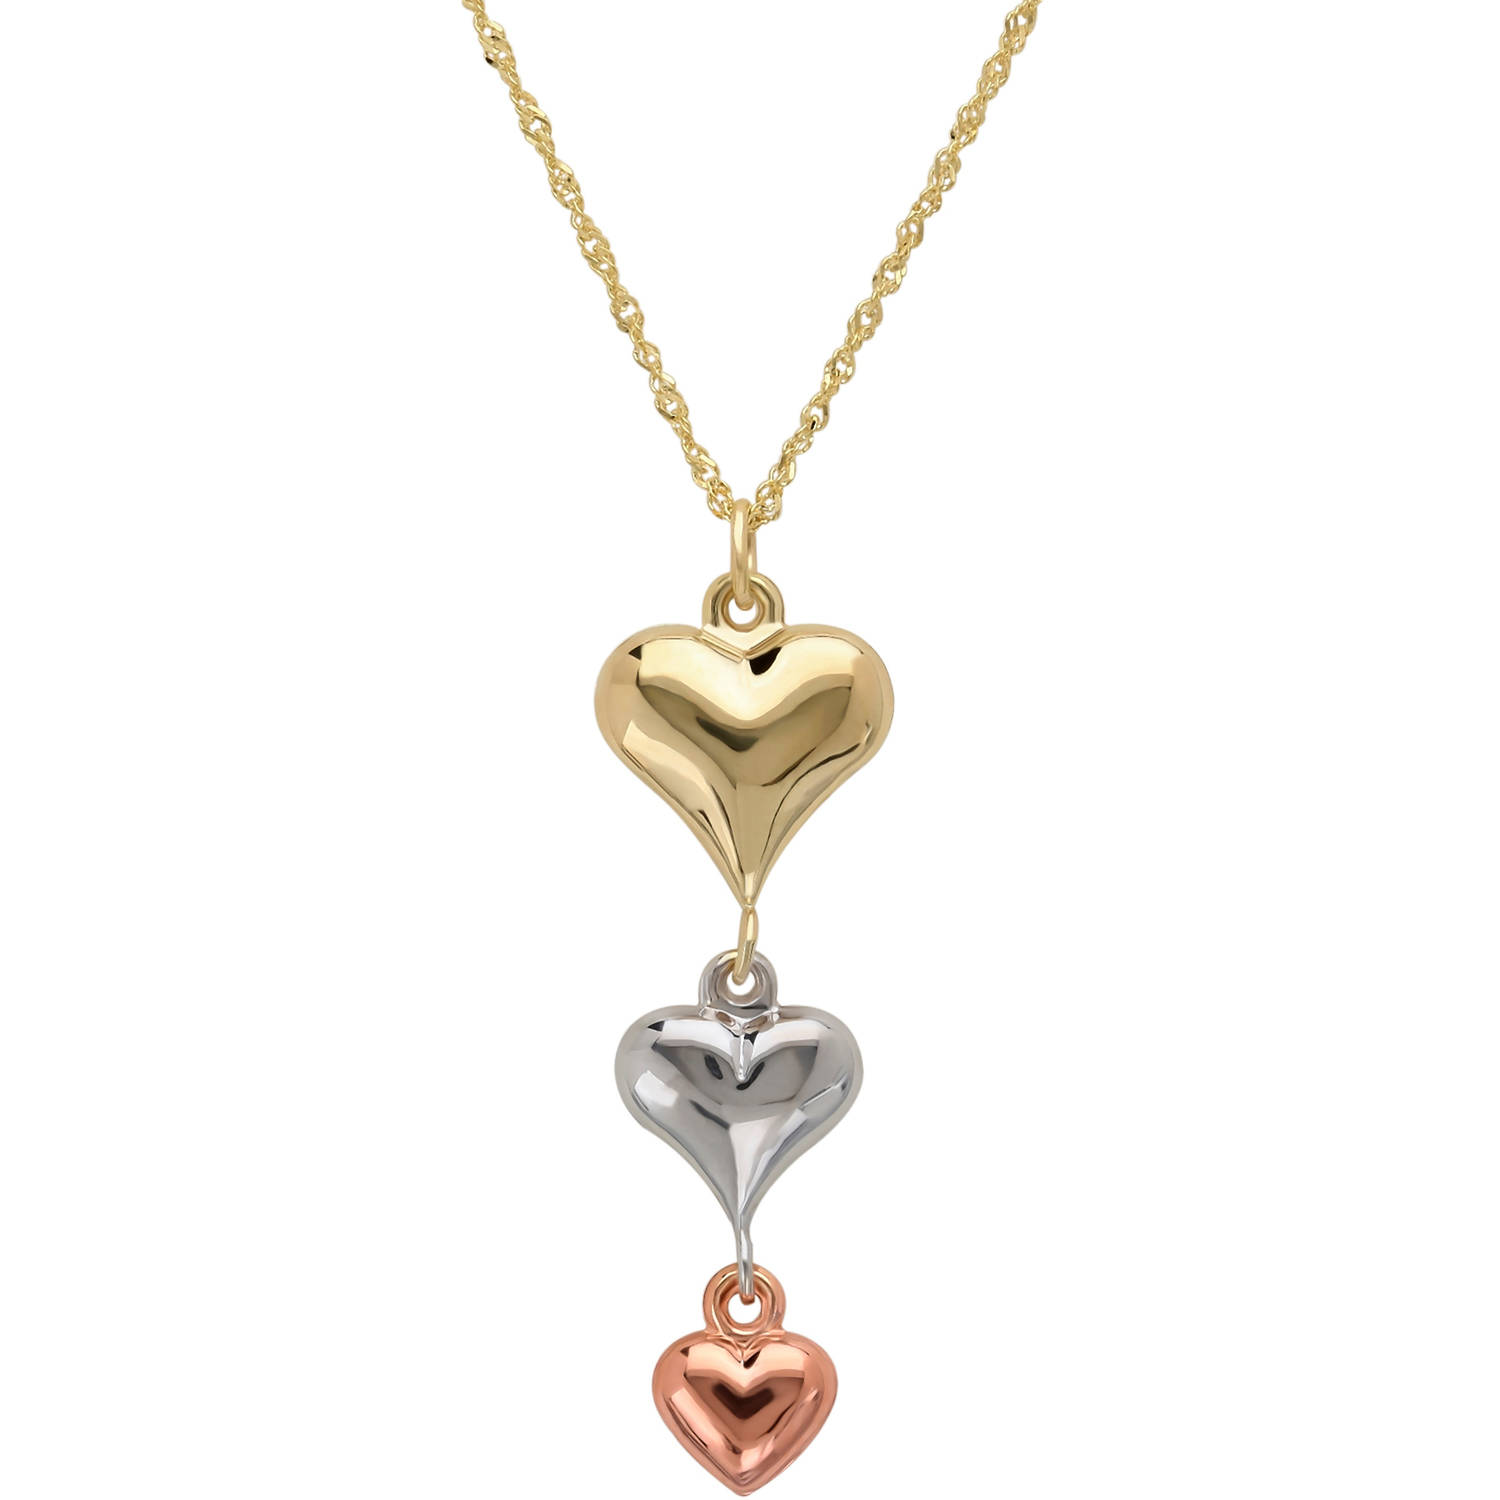 Simply Gold Puffed Heart 10kt Yellow, White and Pink Gold Necklace, 18